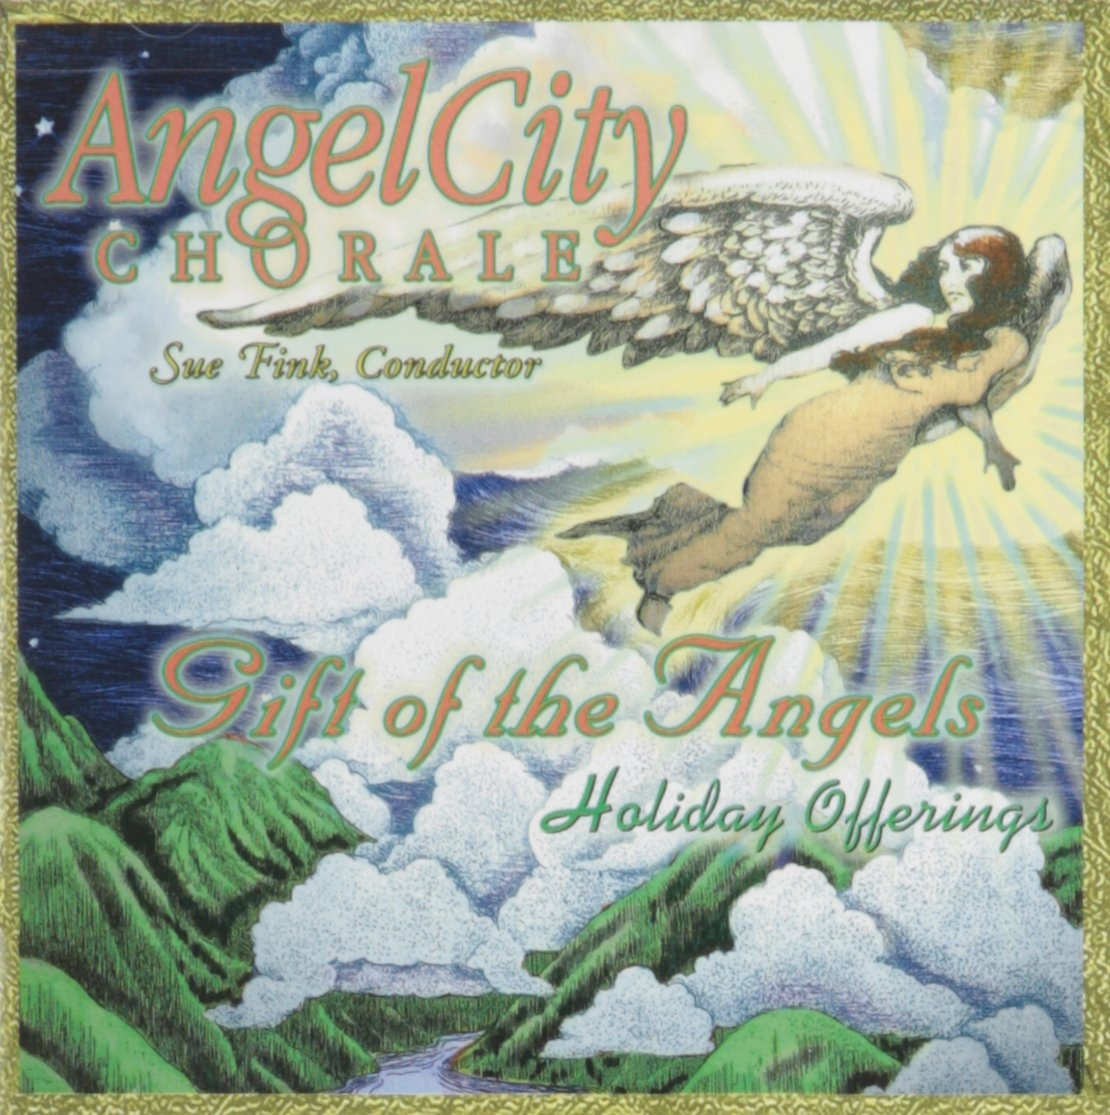 Gift of the Angels - Holiday Offerings